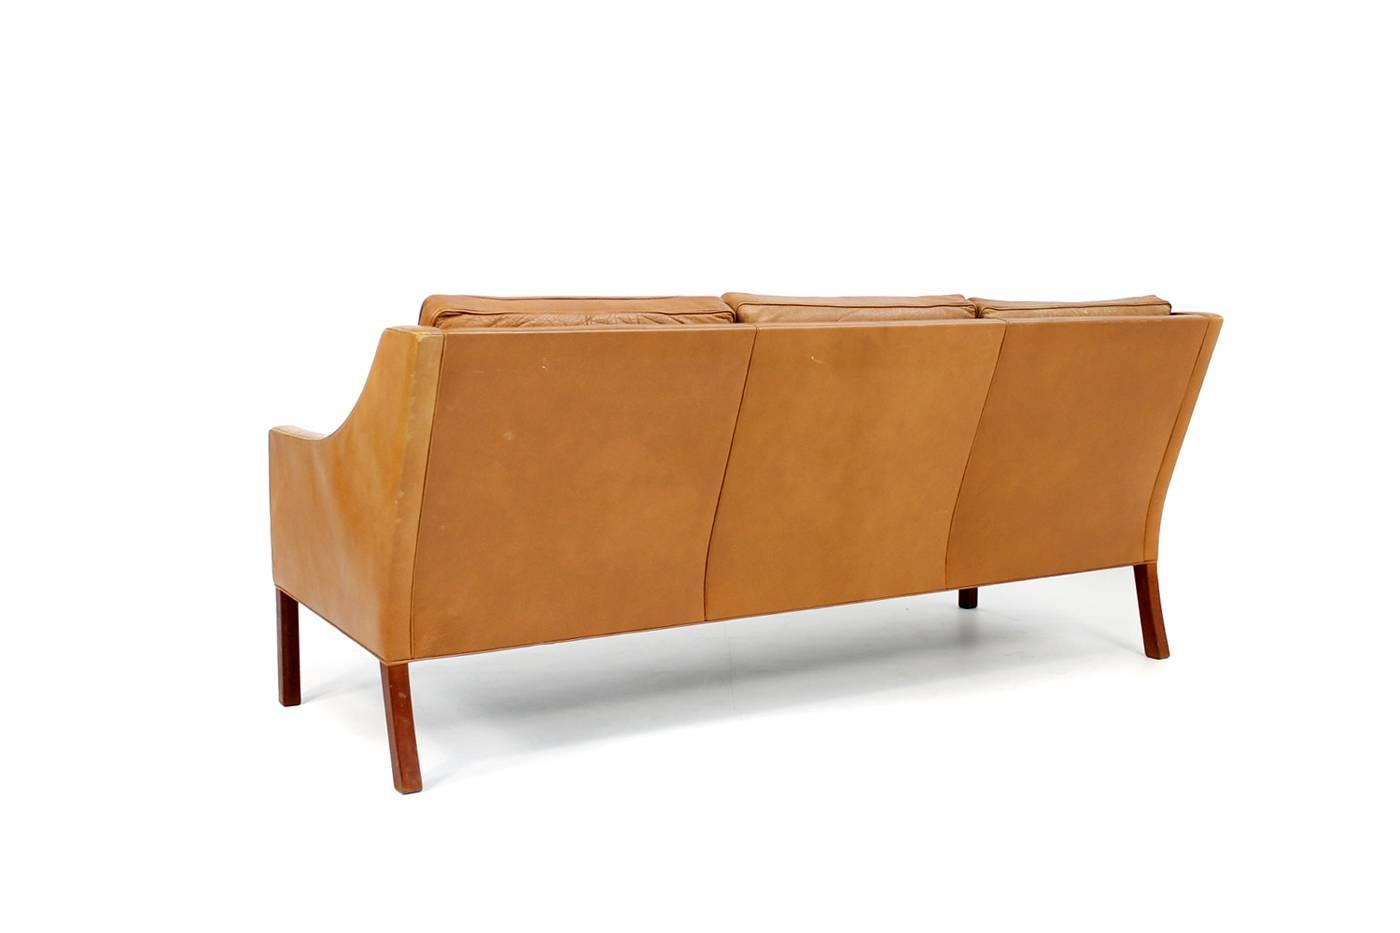 mogensen sofa 2209 sofas comparable to pottery barn borge leather mod by fredericia